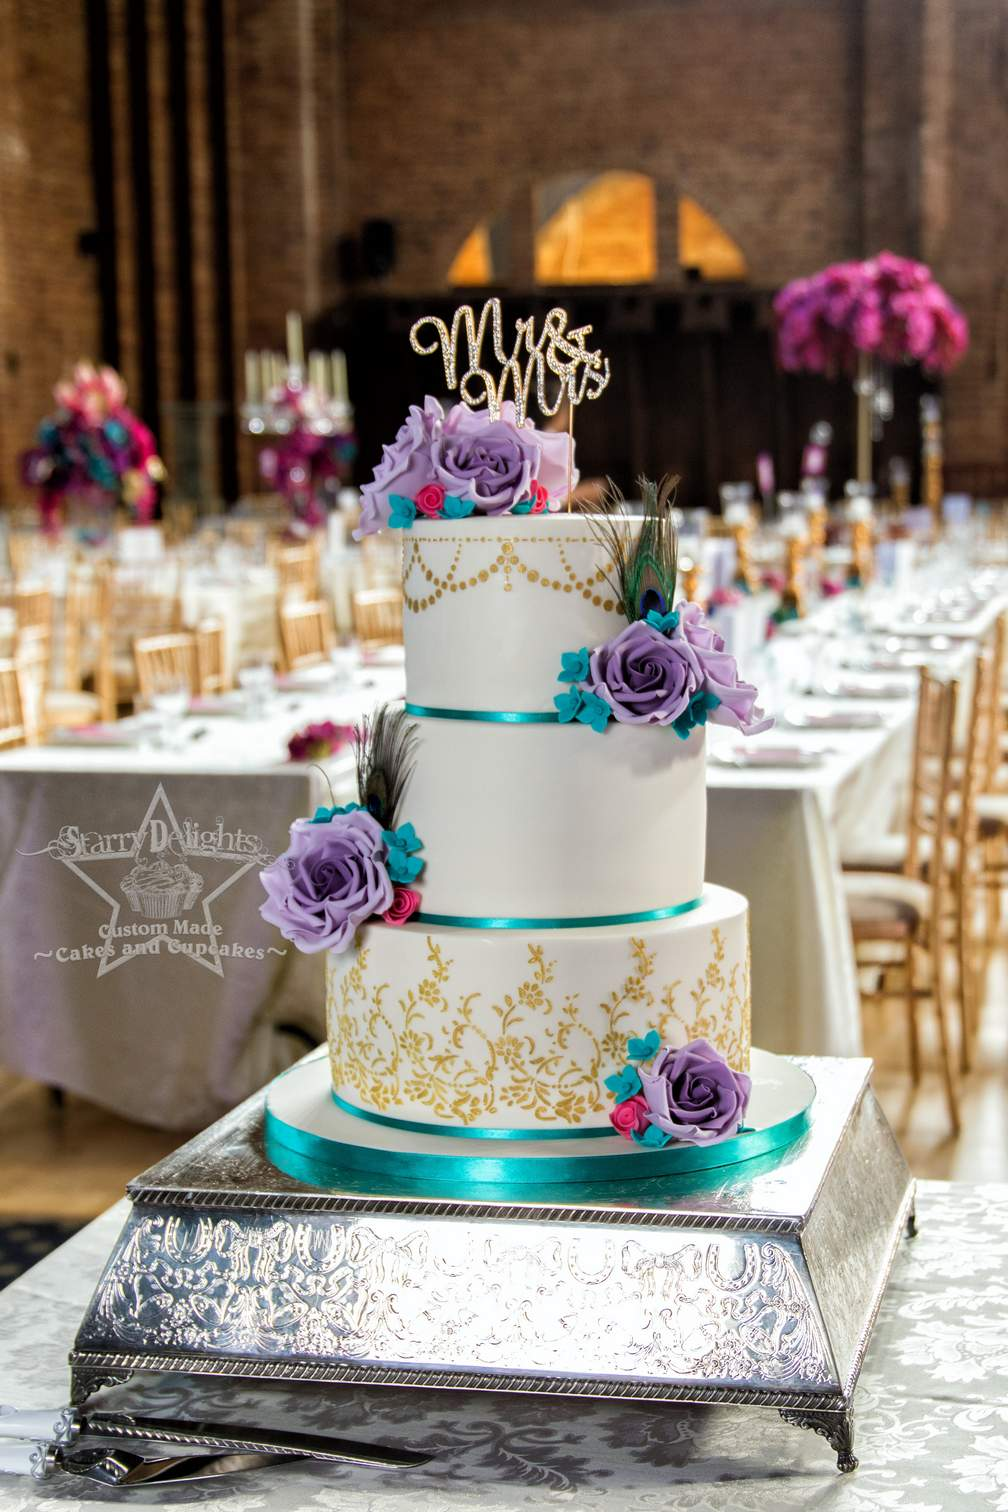 Kelham-Hall-wedding-cake-Nottingham-wedding-cake